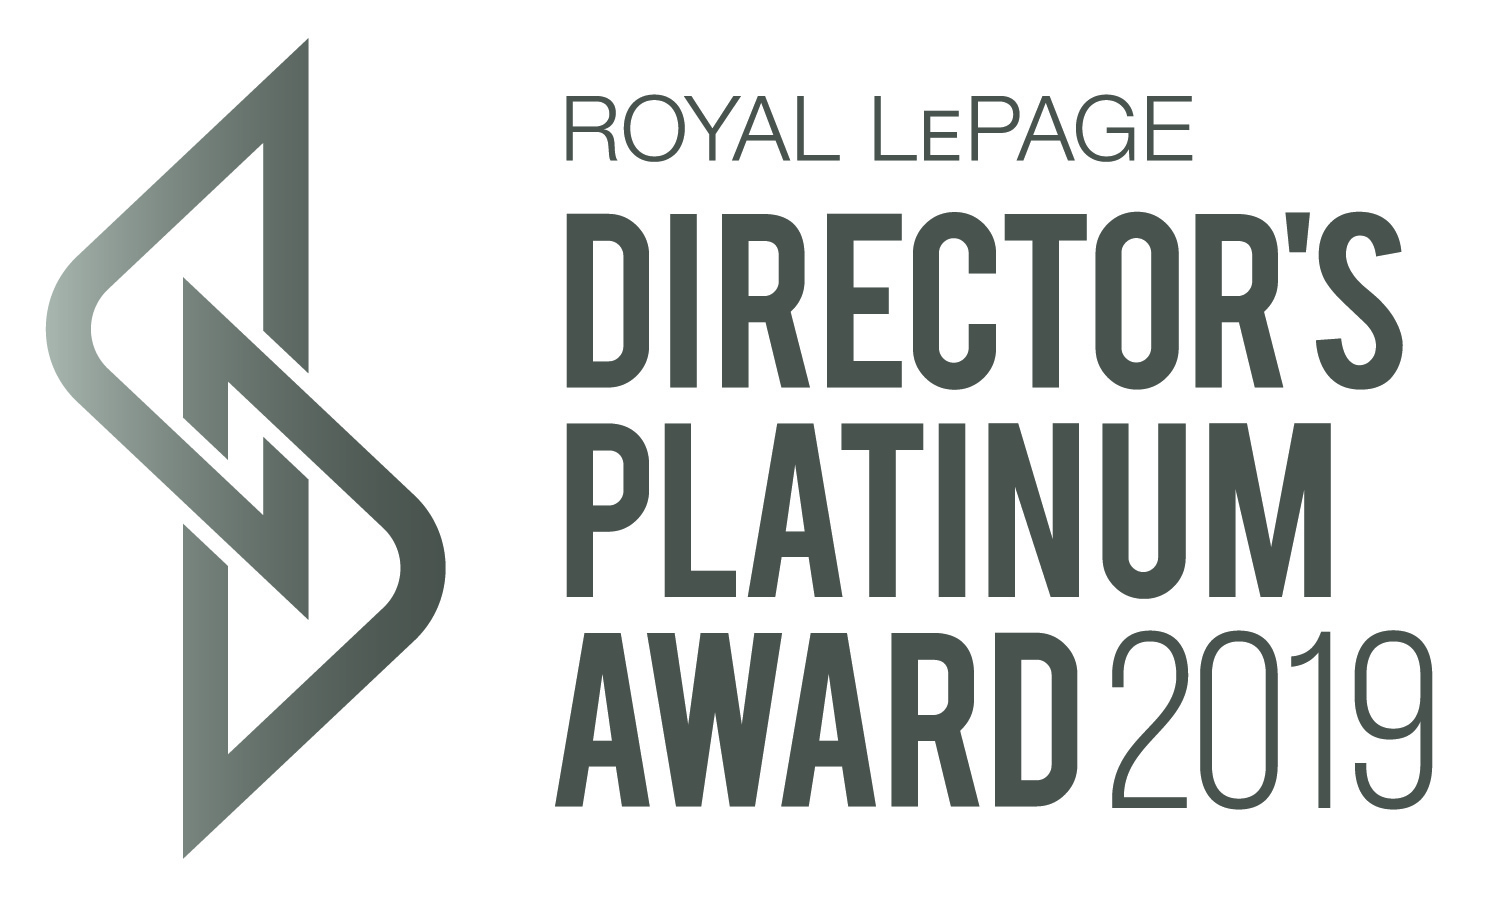 Recipient of the Directors Platinum Award for 2019 and 2020 in recognition of the top 5% in sales across Canada.